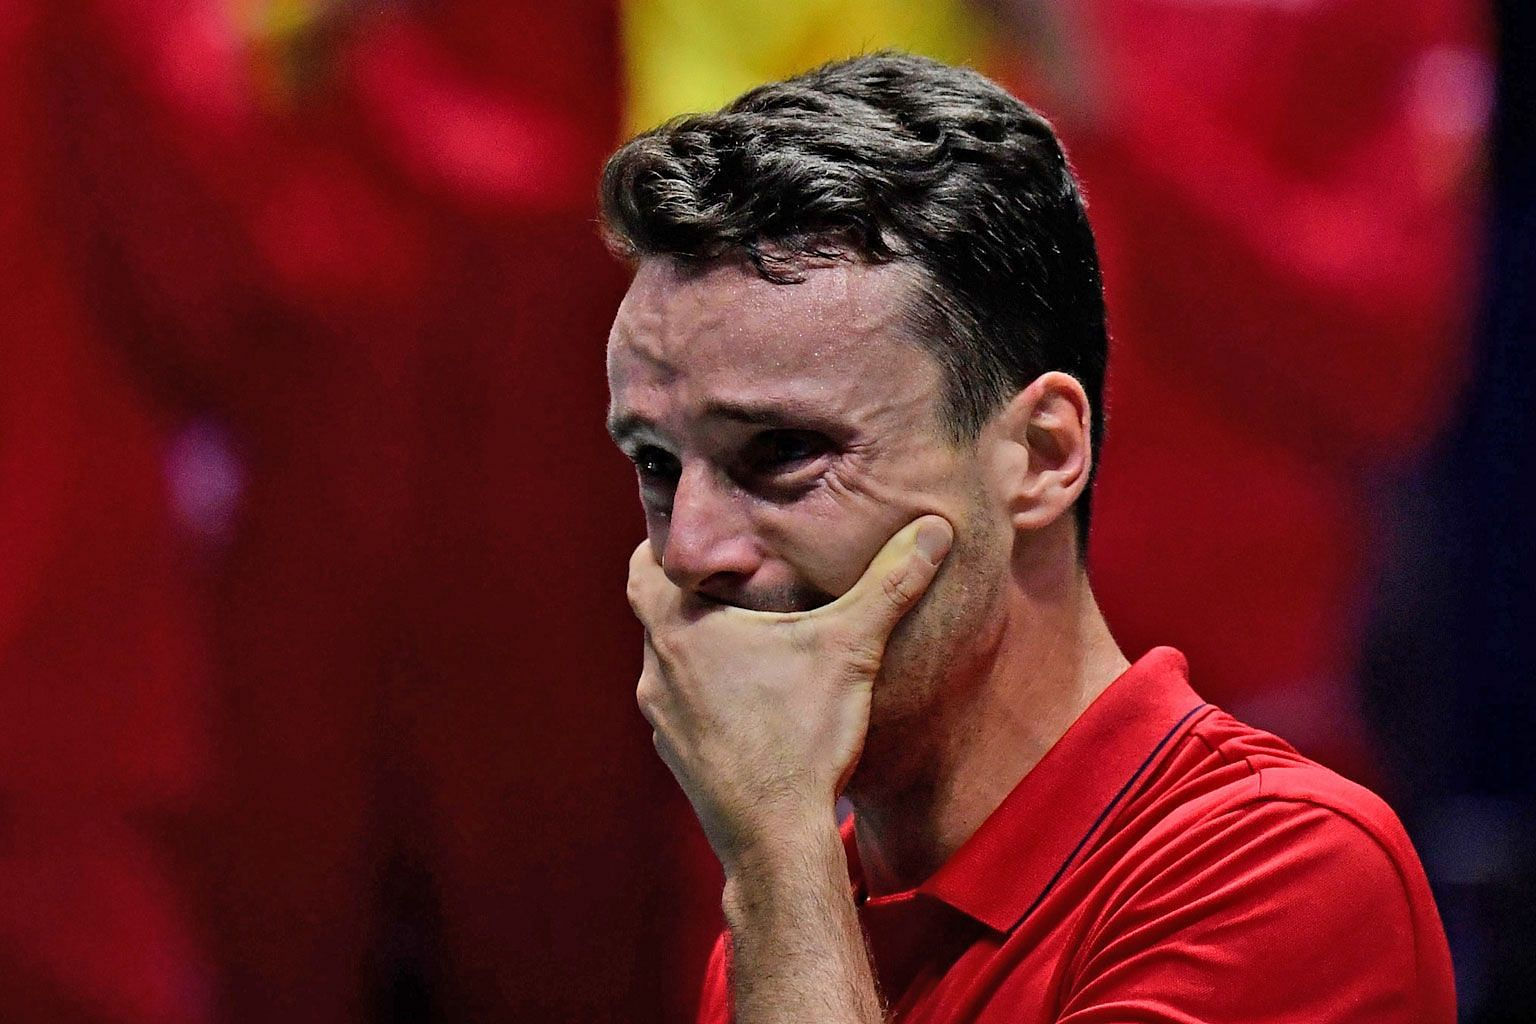 Roberto Bautista Agut cannot contain his emotions after beating Canada's Felix Auger-Aliassime during their Davis Cup final match on Sunday. The victory came three days after the Spaniard's father died. PHOTO: AGENCE FRANCE-PRESSE